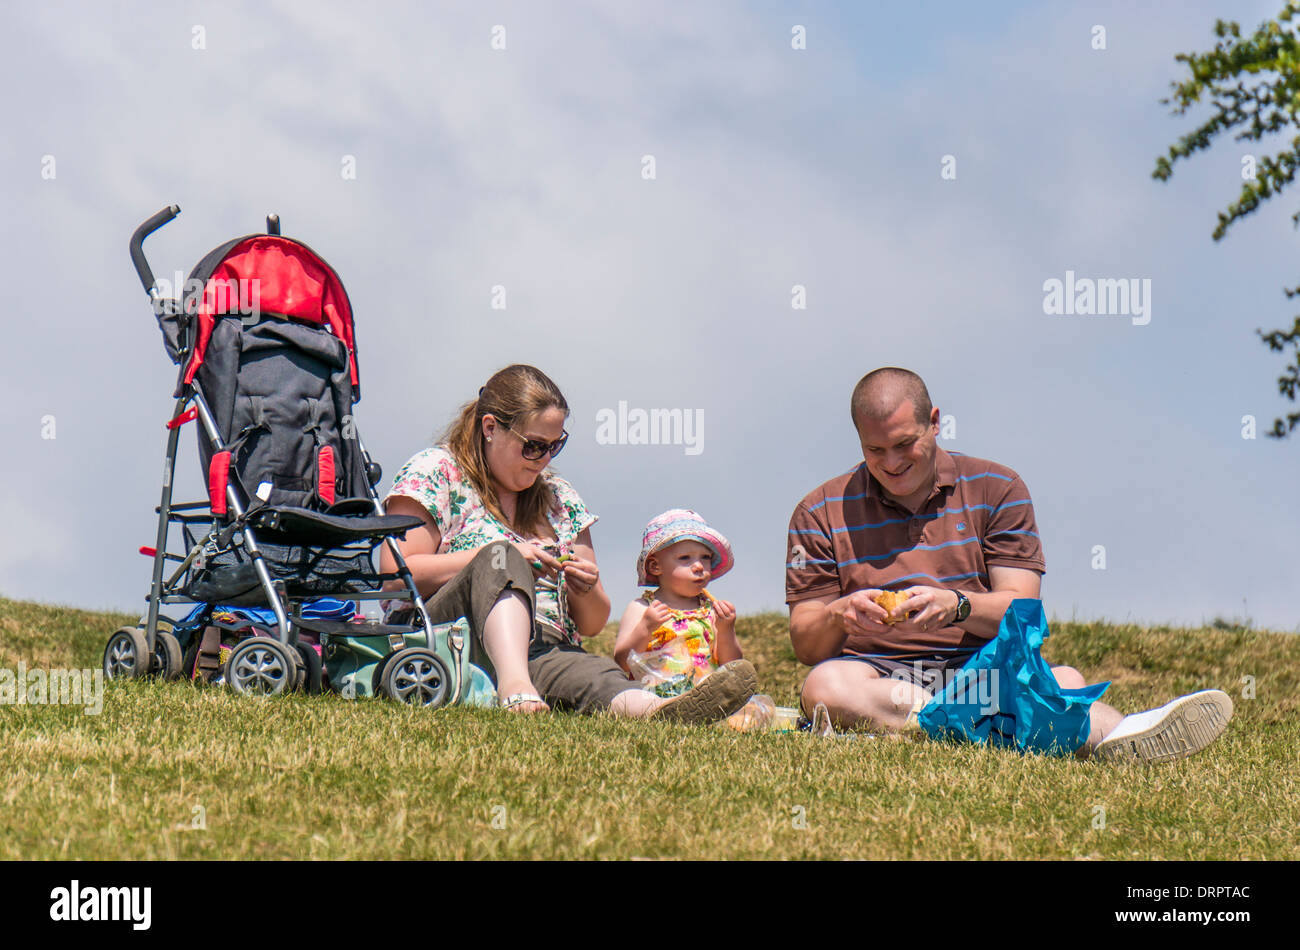 A couple and their baby spending some quality time together, having a picnic in the warm summer sunshine, on Box Hill, Surrey, England, UK. - Stock Image